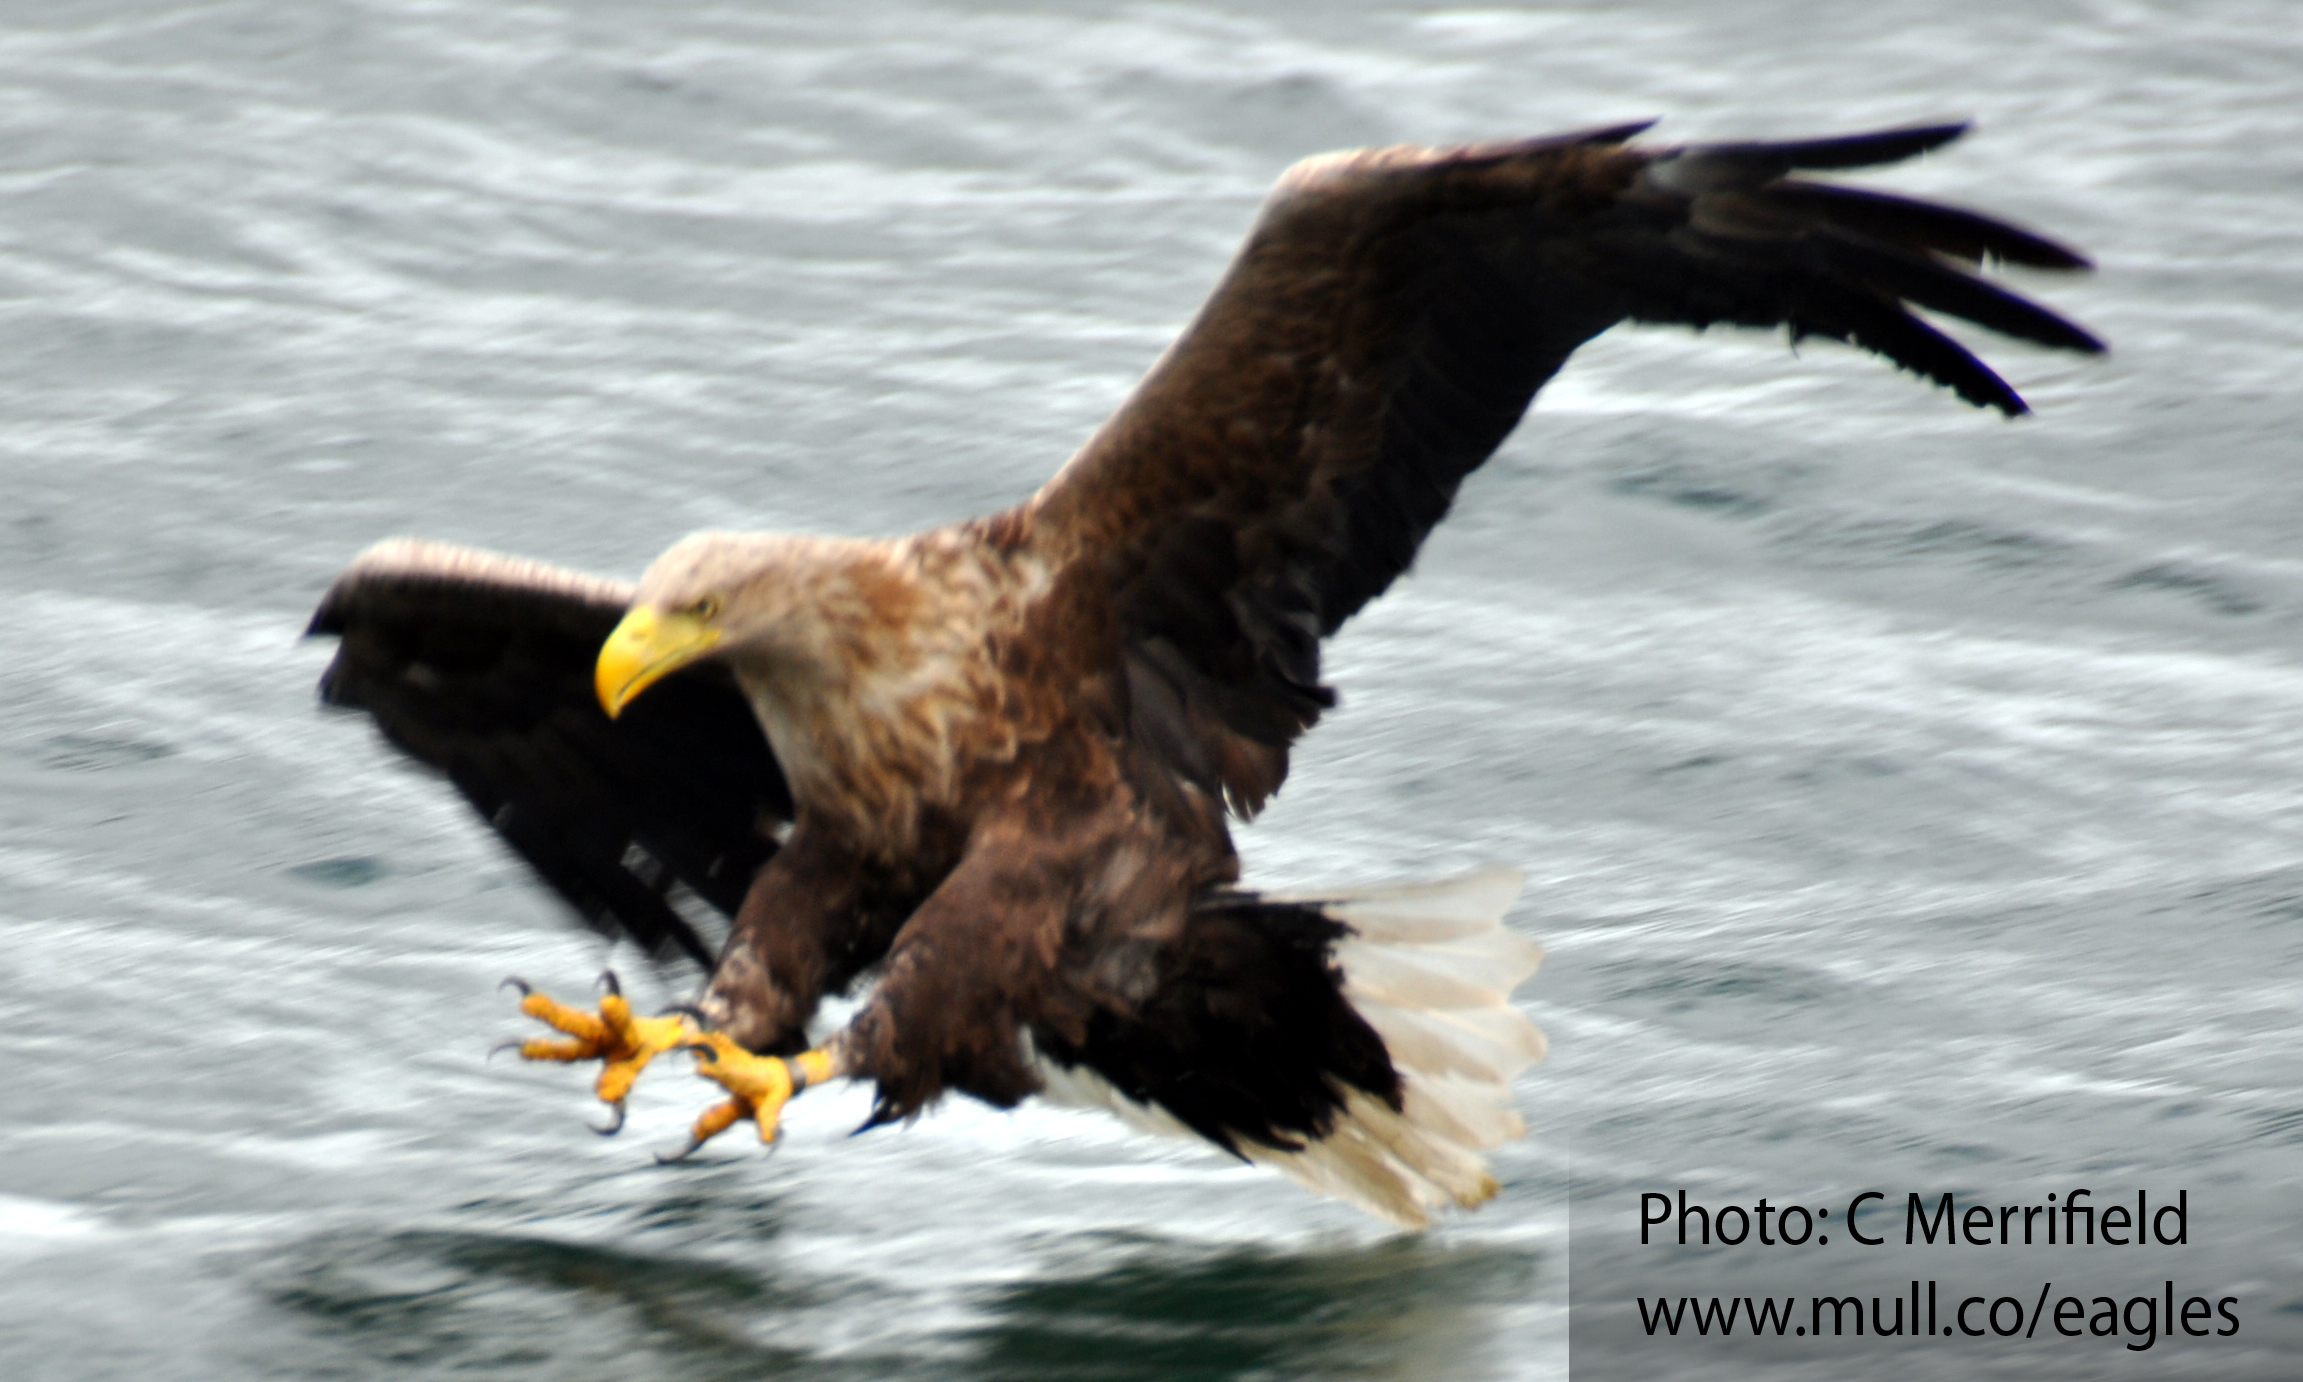 Mull sea eagle swooping